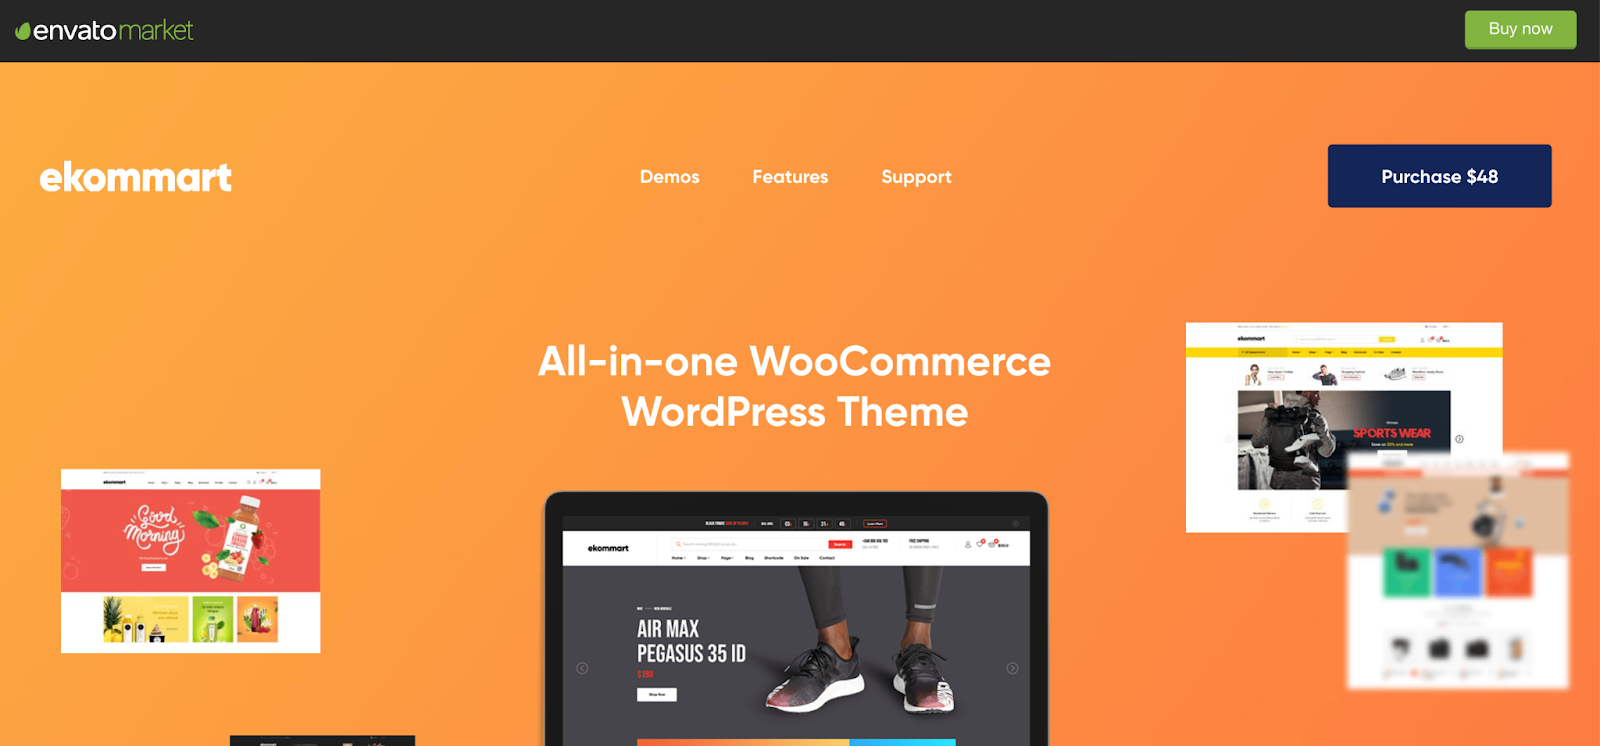 Ekommart WordPress Marketplace theme homepage featuring the tagline, computer screen, and example of the the theme layout